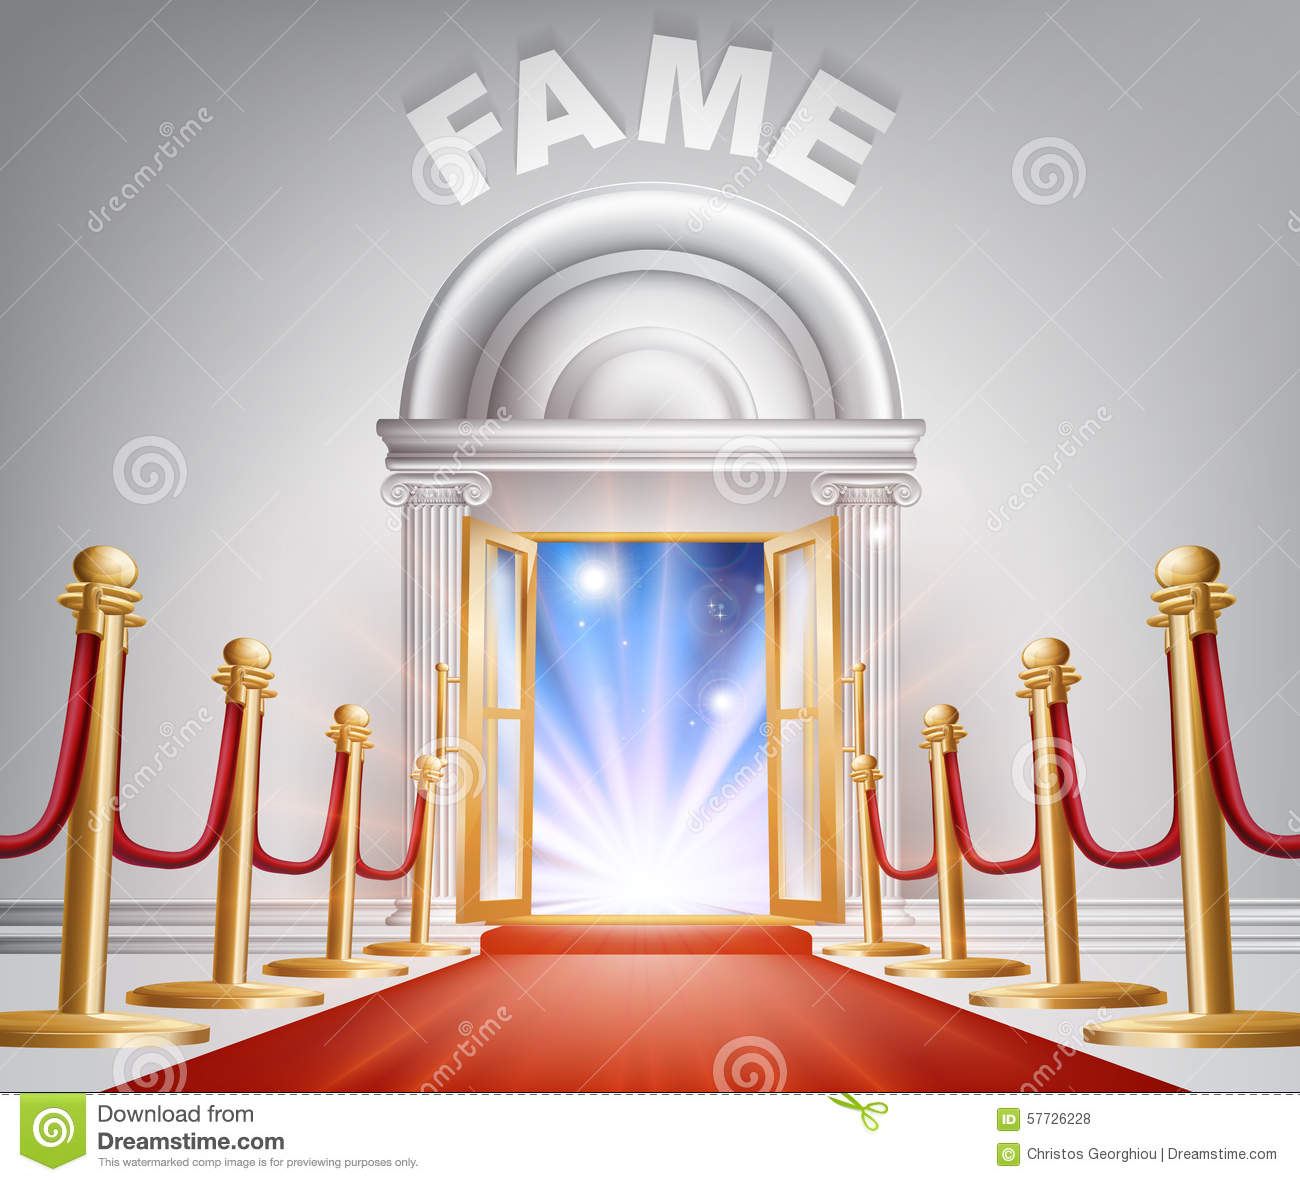 Le Meilleur Fame Red Carpet Door Stock Vector Illustration Of Ce Mois Ci